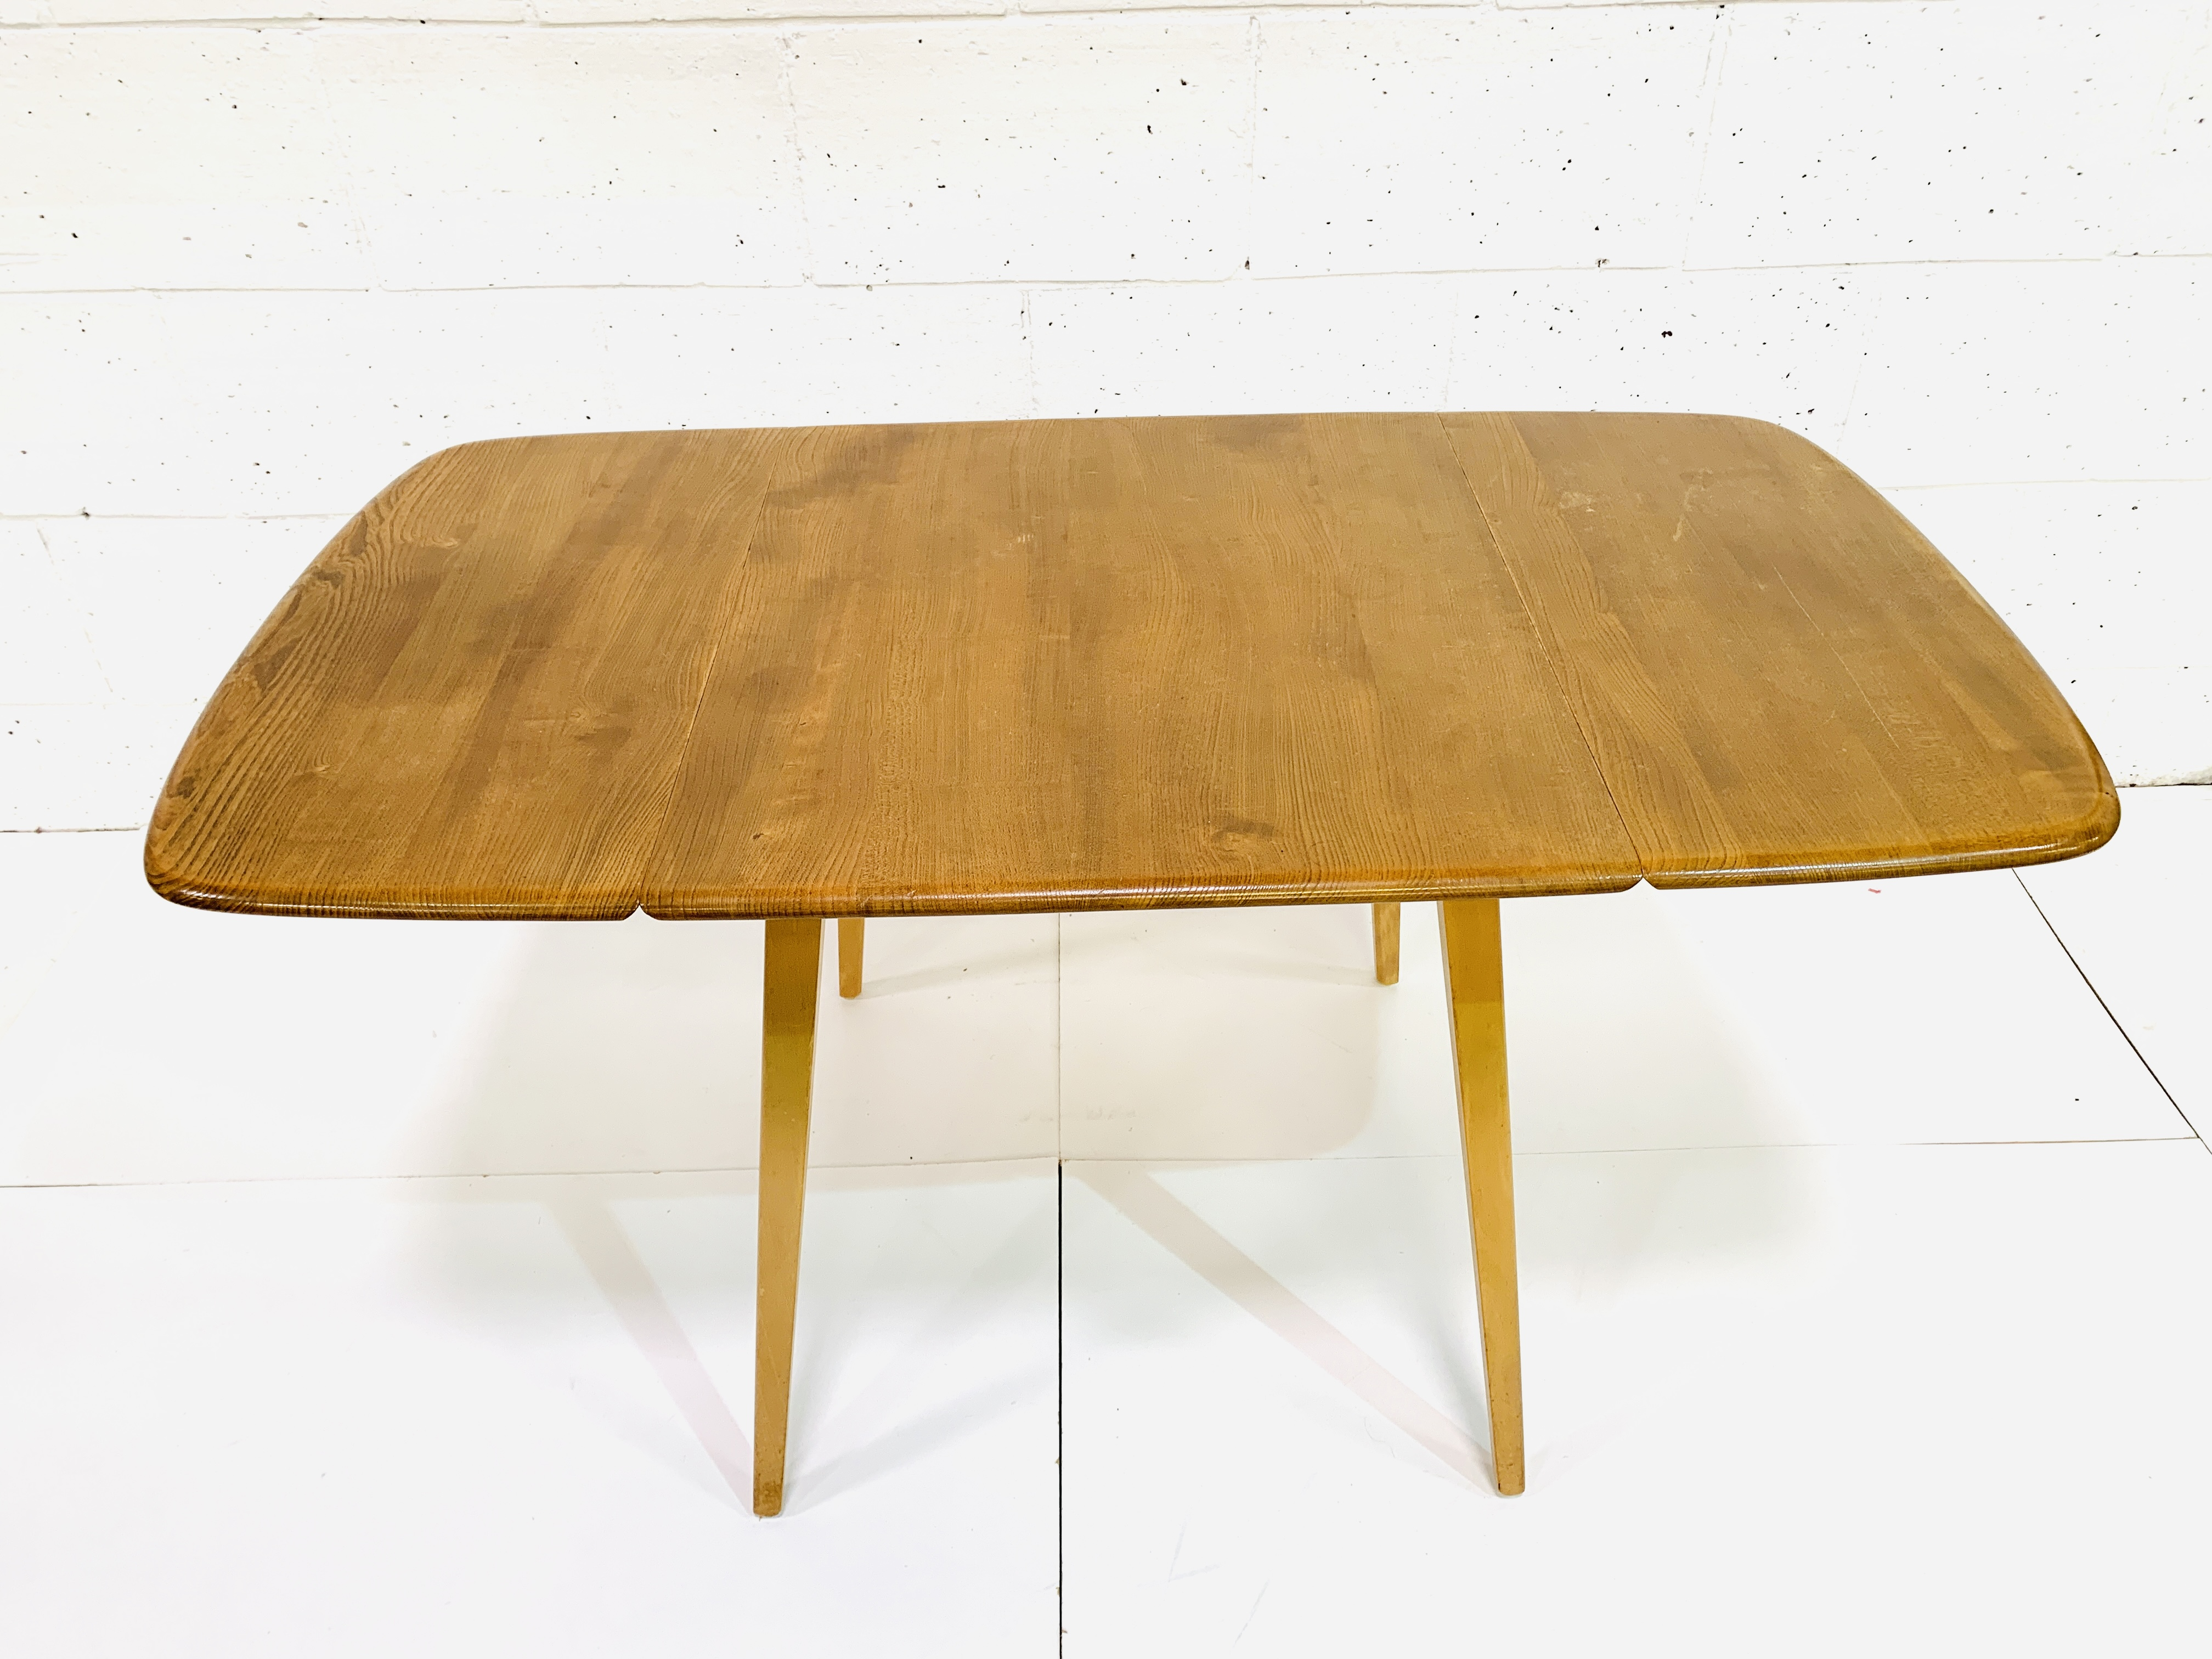 Ercol dropside table - Image 5 of 7